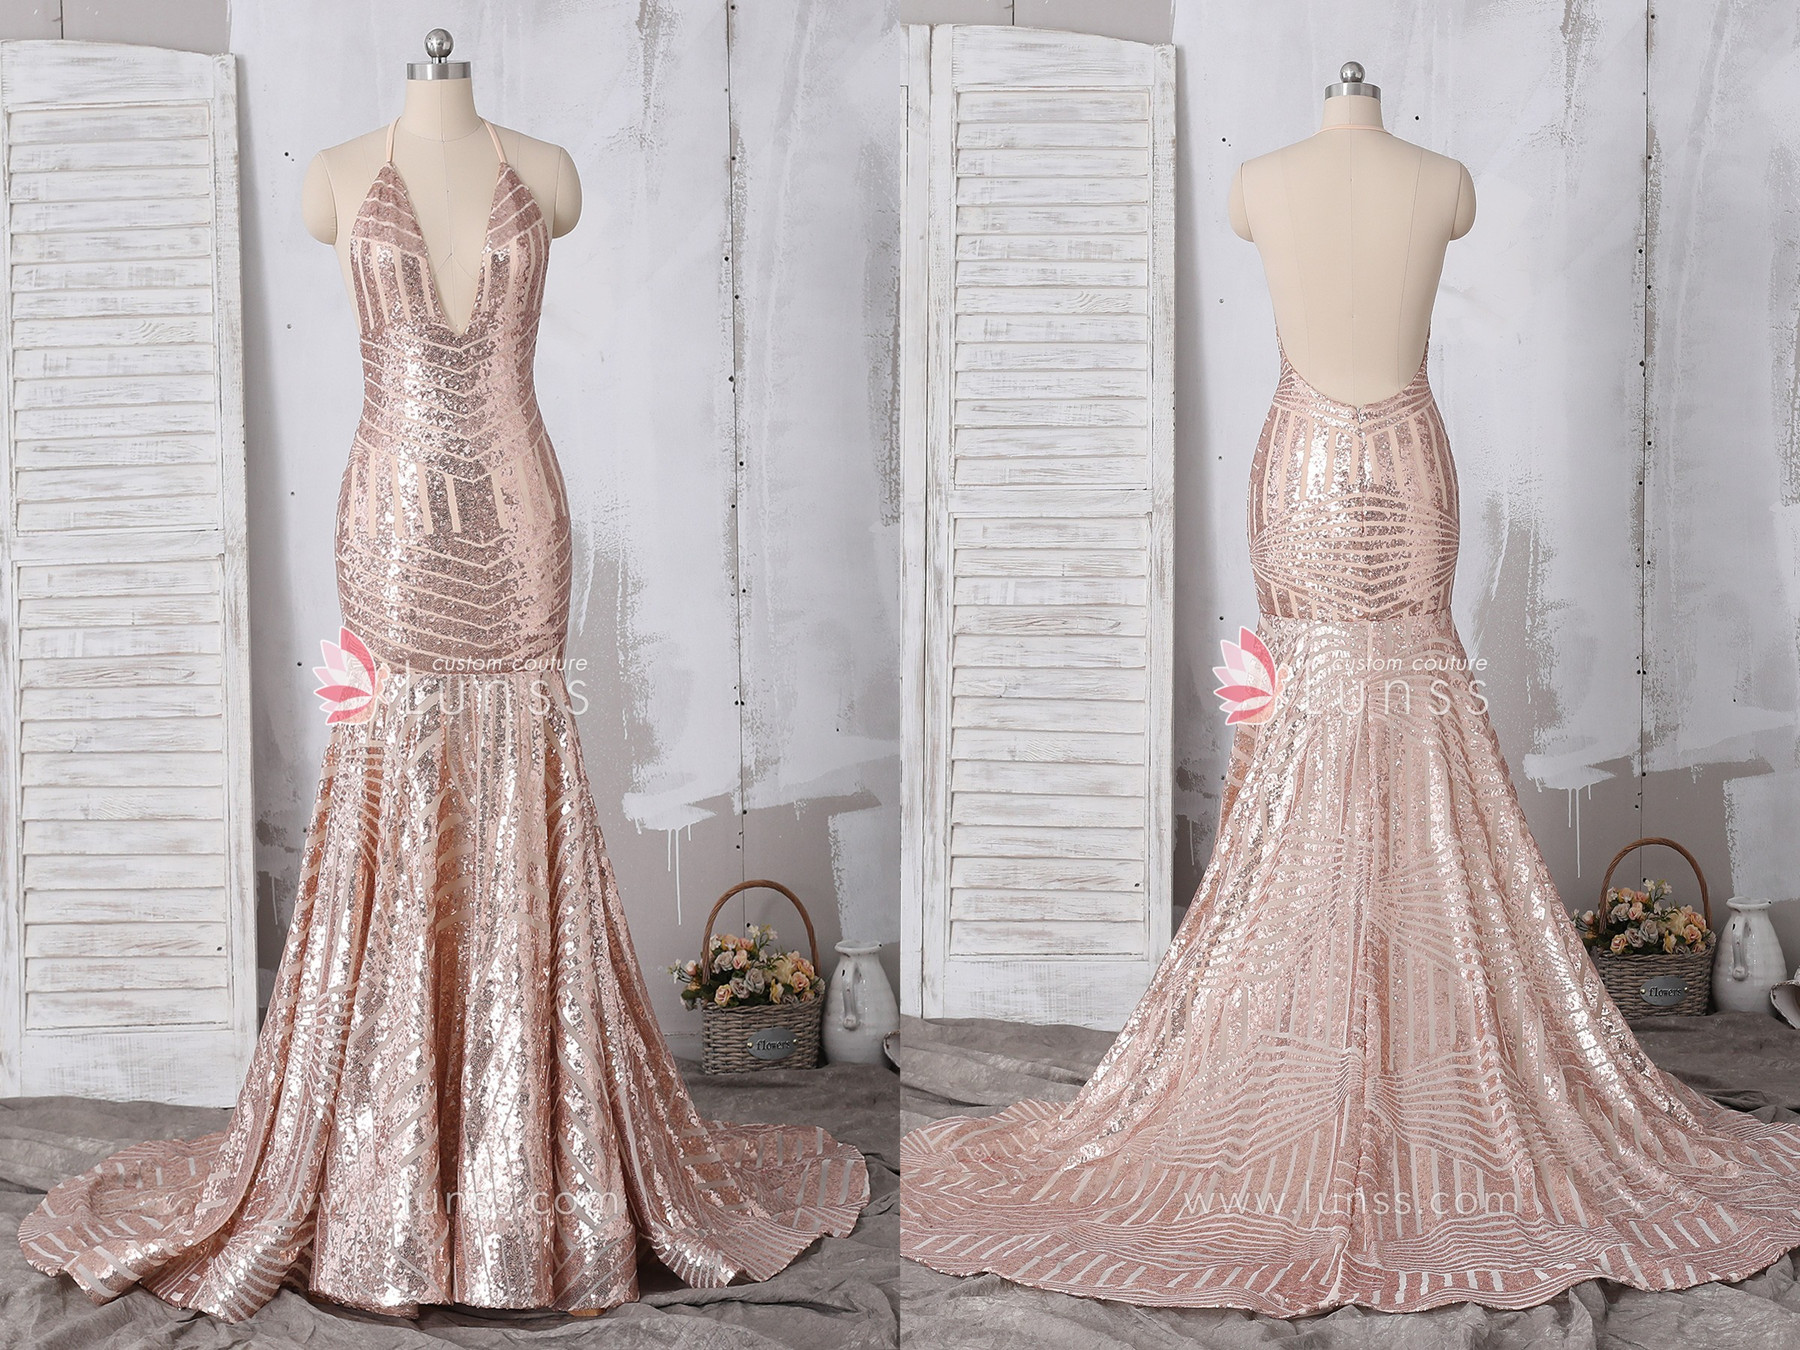 bfd1218bfdf7 5 Of The Best Sparkling Sequin Prom Dresses Designed by Lunss ...